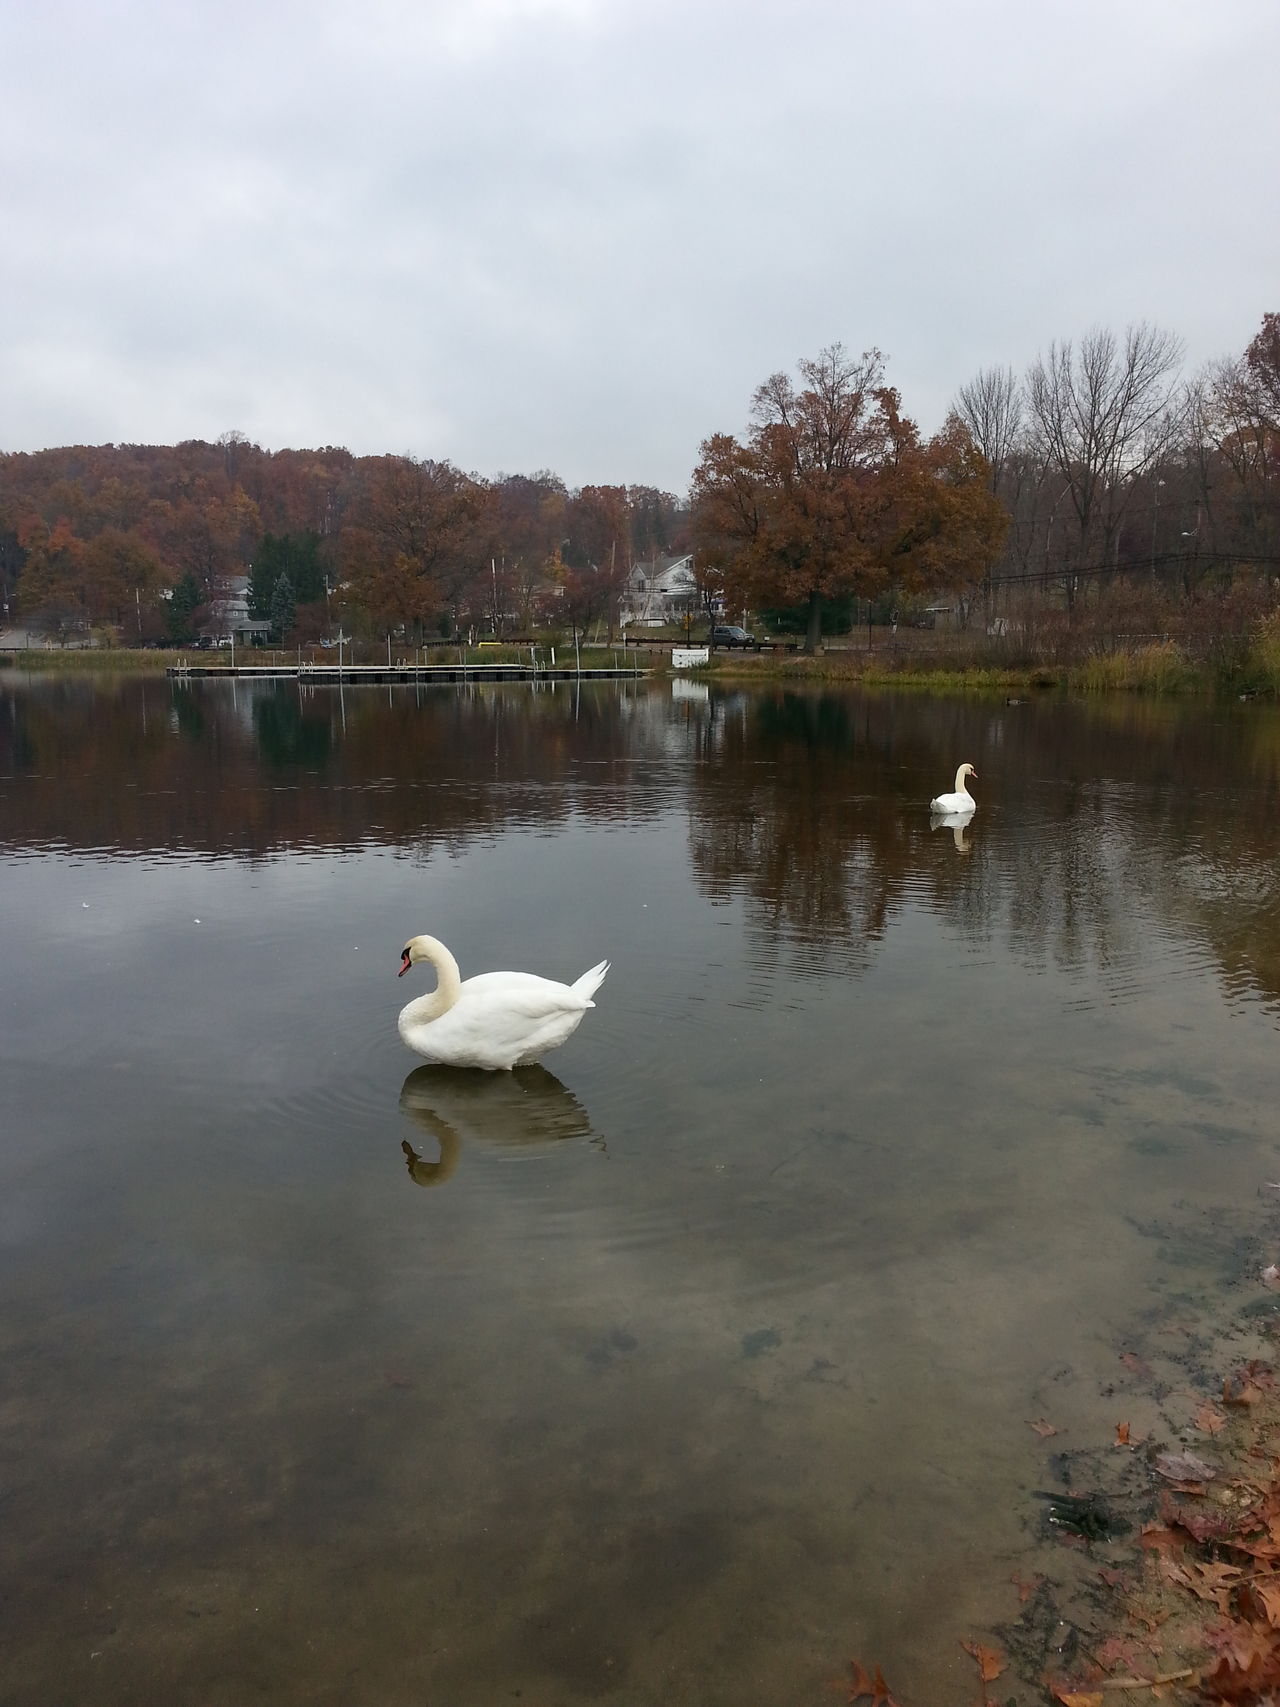 Animal Themes Animals In The Wild Beauty In Nature Bird Day Early Winter Fall Floating On Water Horizontal Symmetry Lake Mates For Life Nature No People Outdoors Reflection Relaxing Moments Rockaway, NJ Swan Swimming Tranquil Scene Tranquility Water Waterfront Wildlife